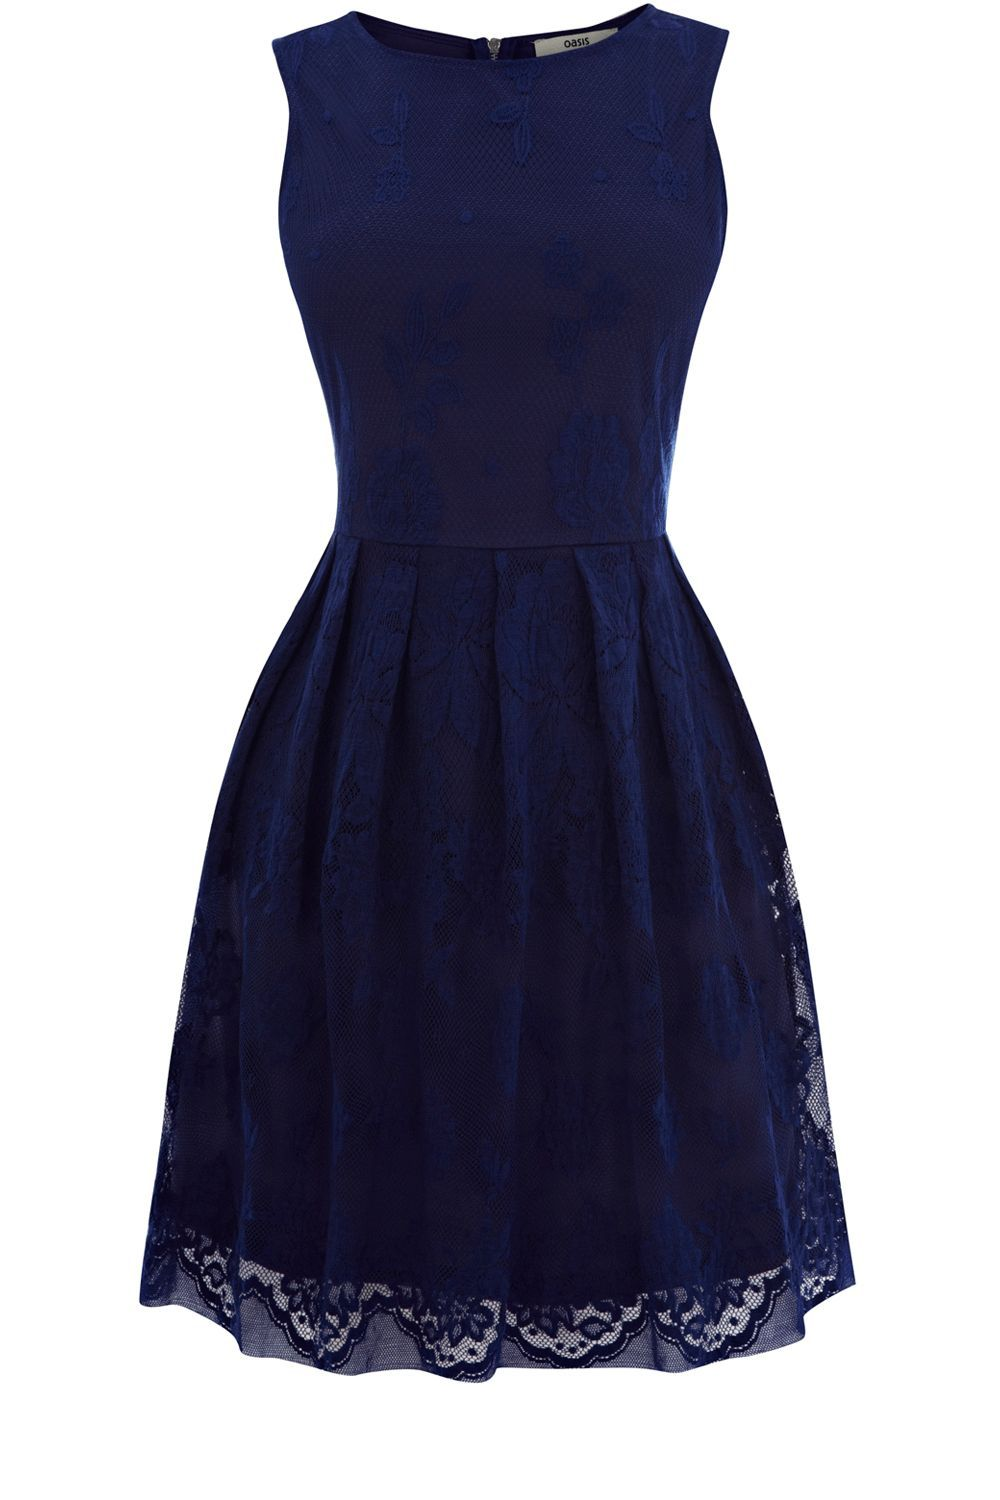 86691475ec0c Oasis Lace Cutaway Dress in Blue (dark blue) | Lyst | Pretty on the ...